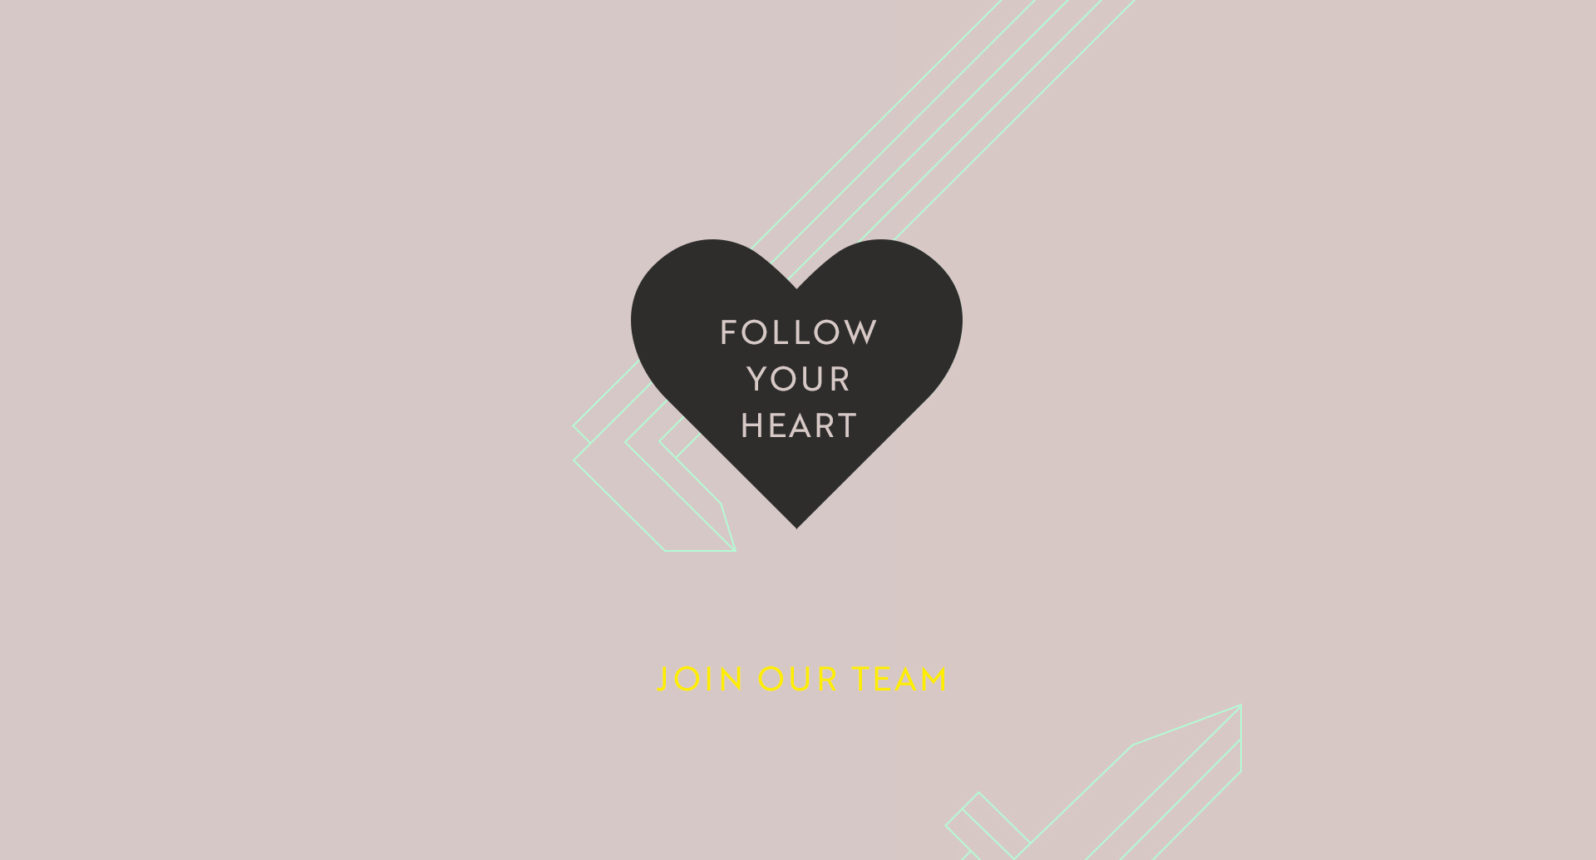 Follow your heart - join our team